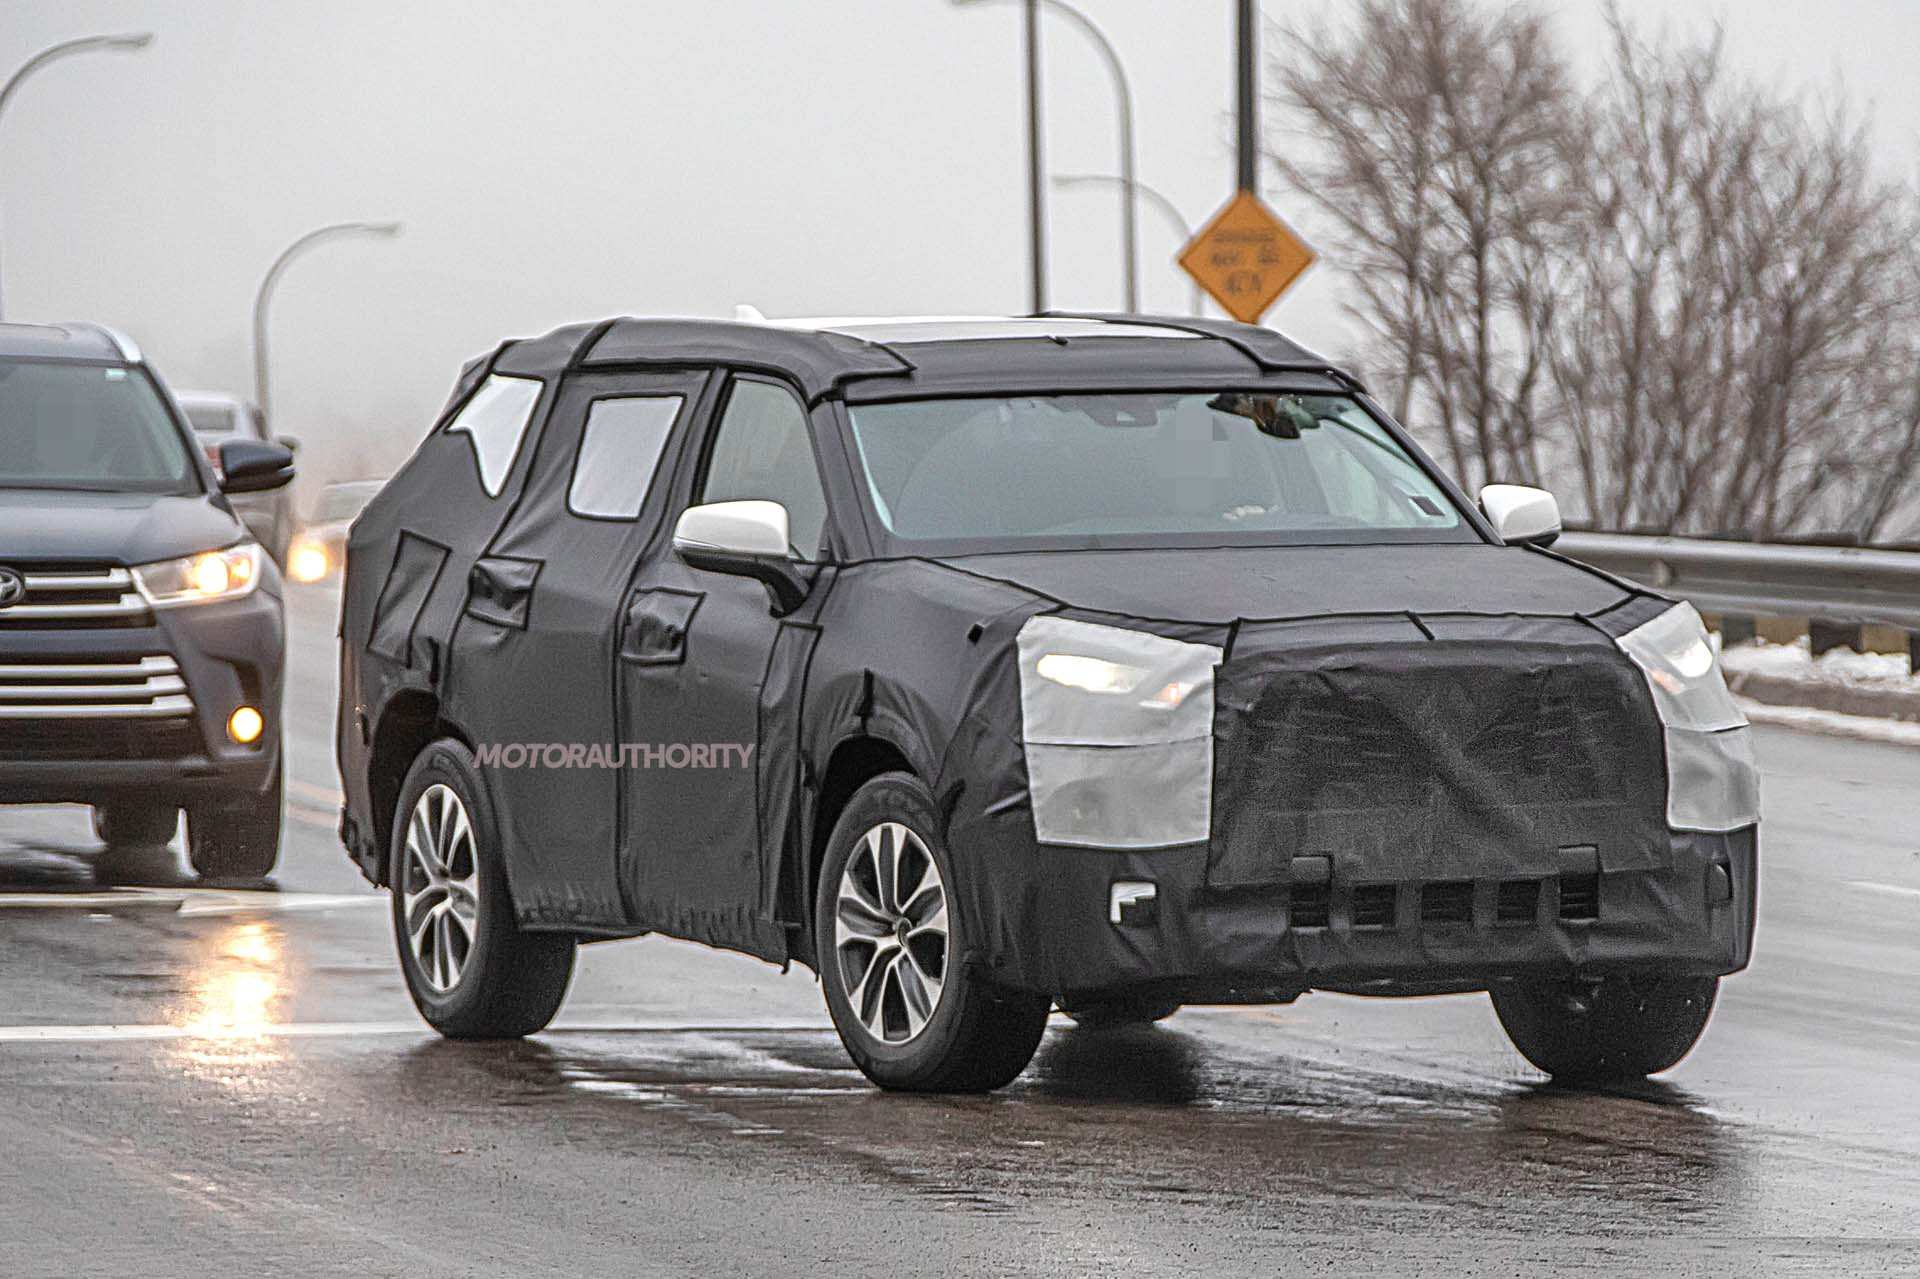 88 All New 2020 Toyota Hilux Spy Shots Overview